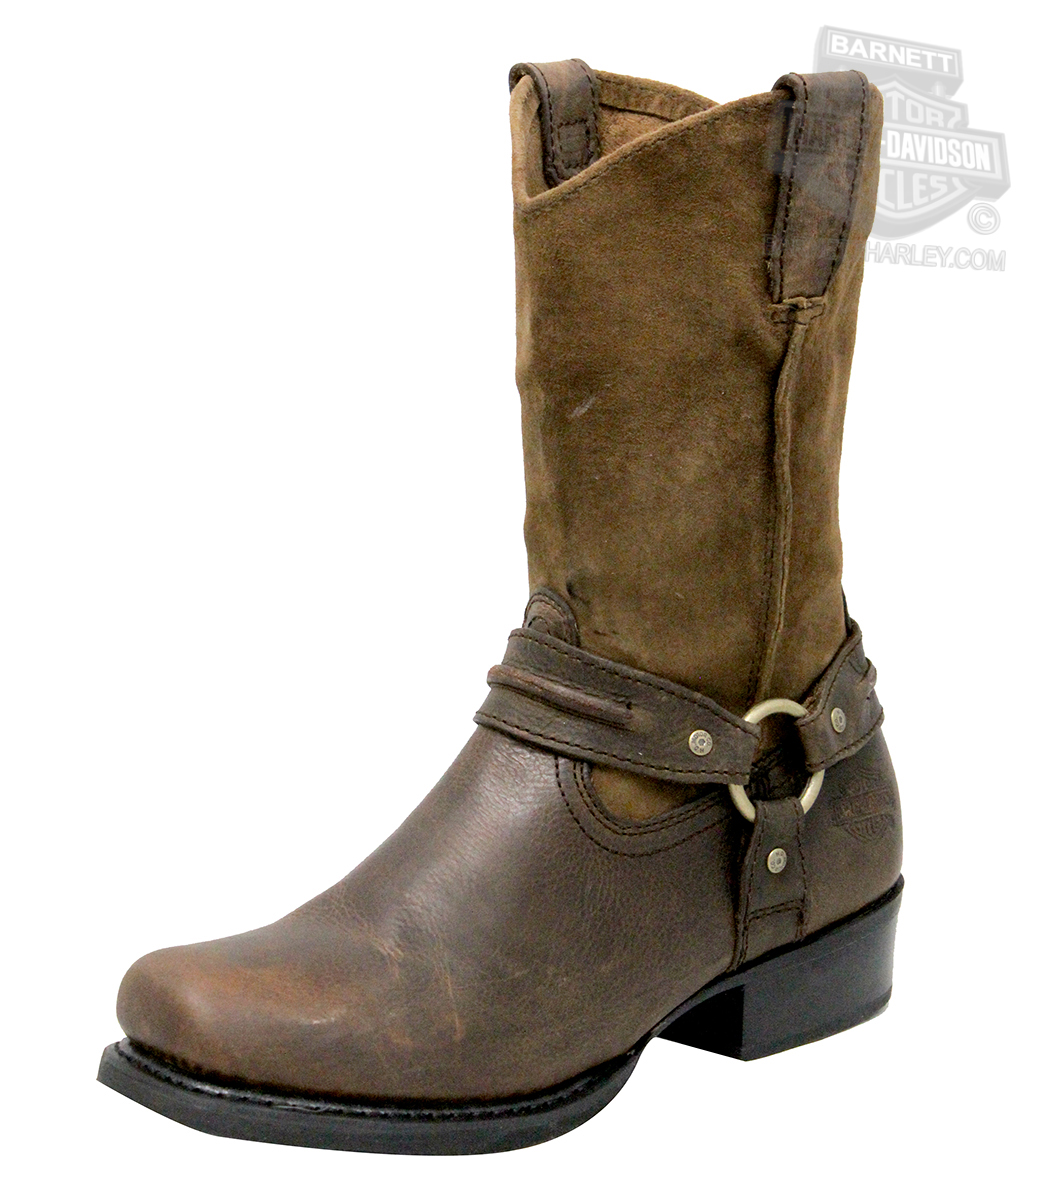 Rubber floor mats for sale - 93154 Harley Davidson 174 Mens Stan Brown High Cut Riding Boot